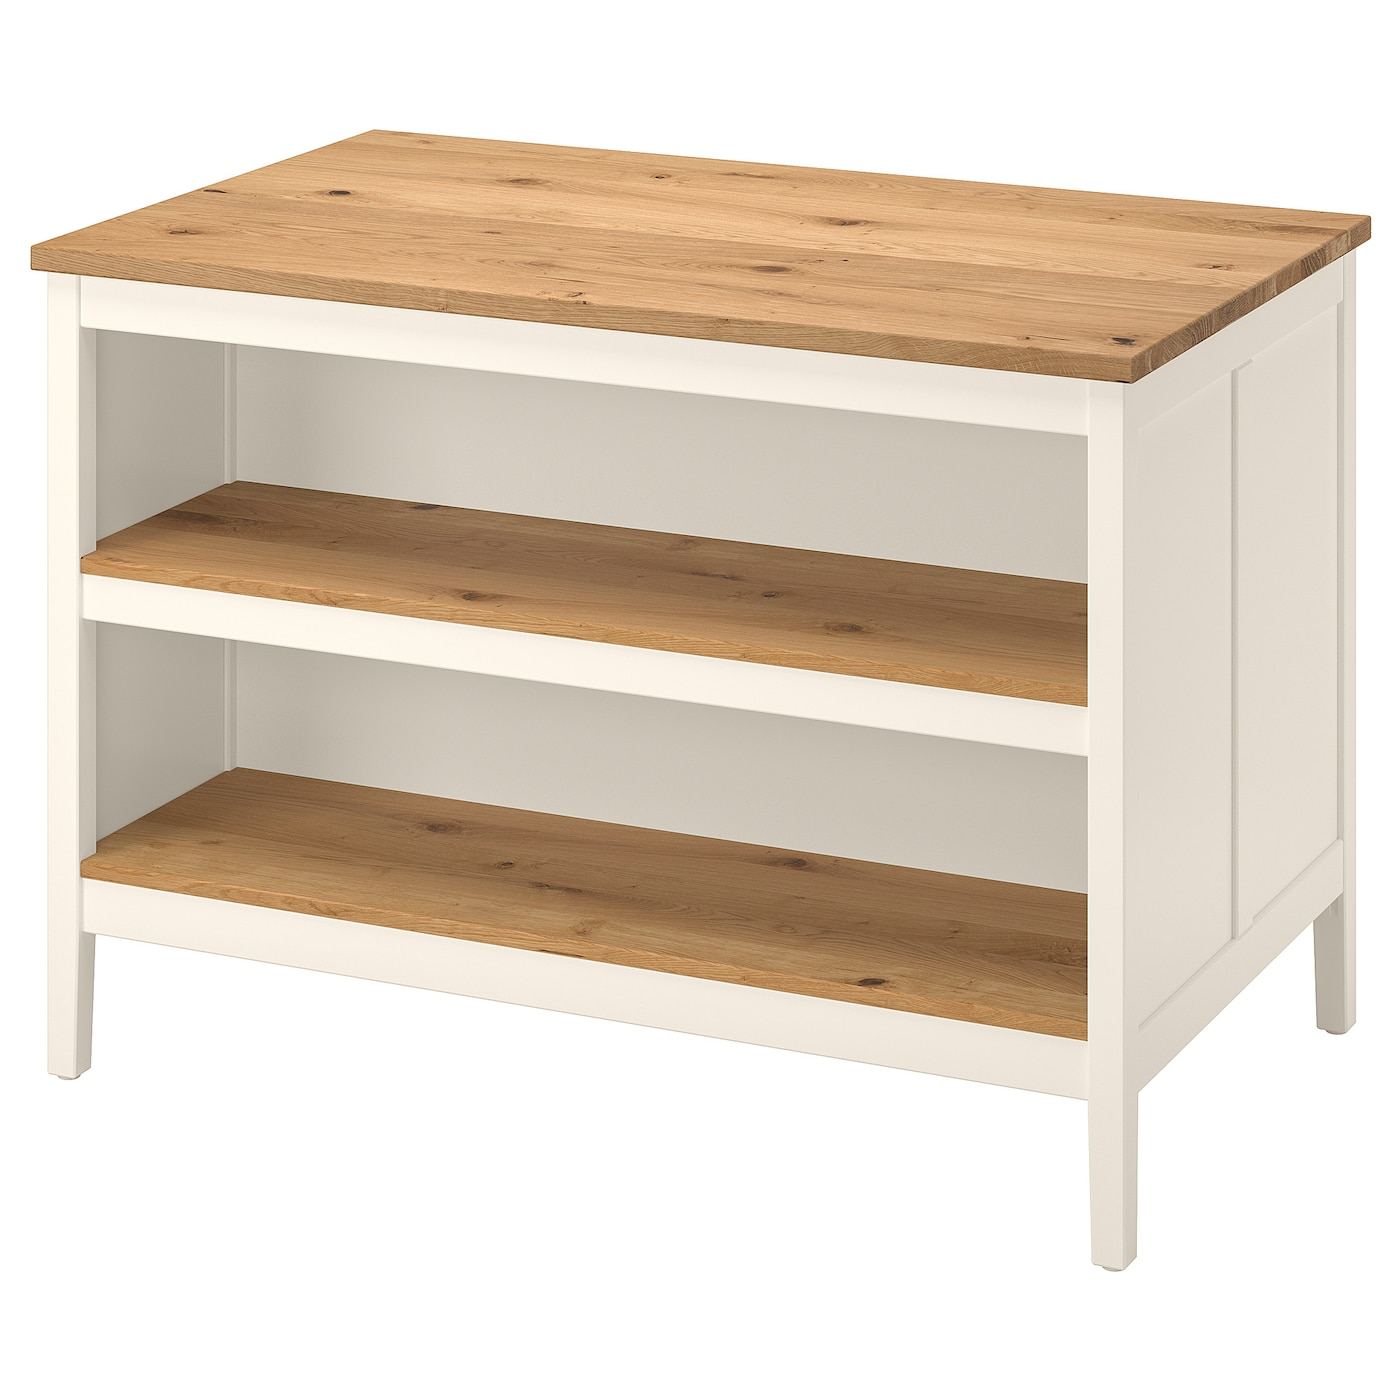 Tornviken Kitchen Island Off White Oak Length 49 5 8 Ikea,United Checked Baggage Weight Restrictions